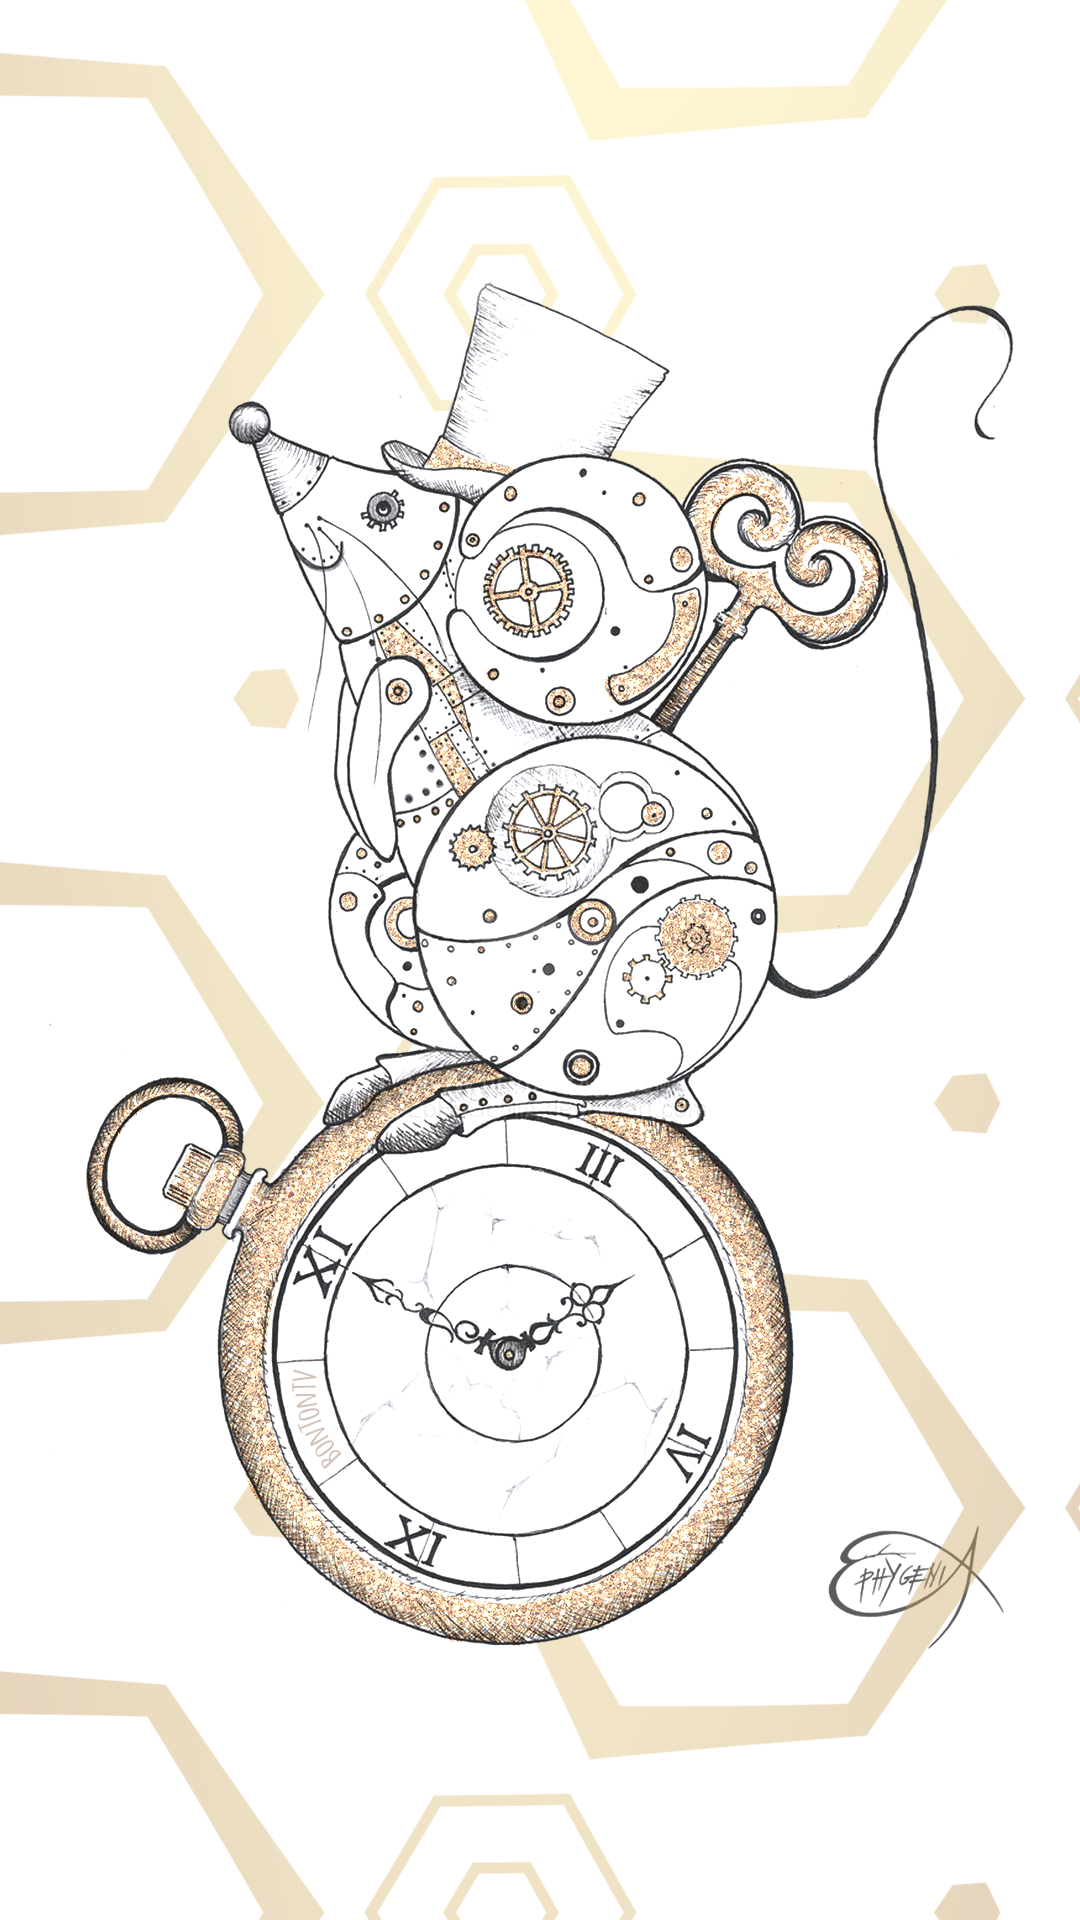 Phone Wallpapers Hd Gold Clockwork Mouse Steampunk By Bonton Tv Free Backgrounds 1080x1920 Wallpapers Phone Wallpaper Iphone Wallpaper Pretty Wallpapers